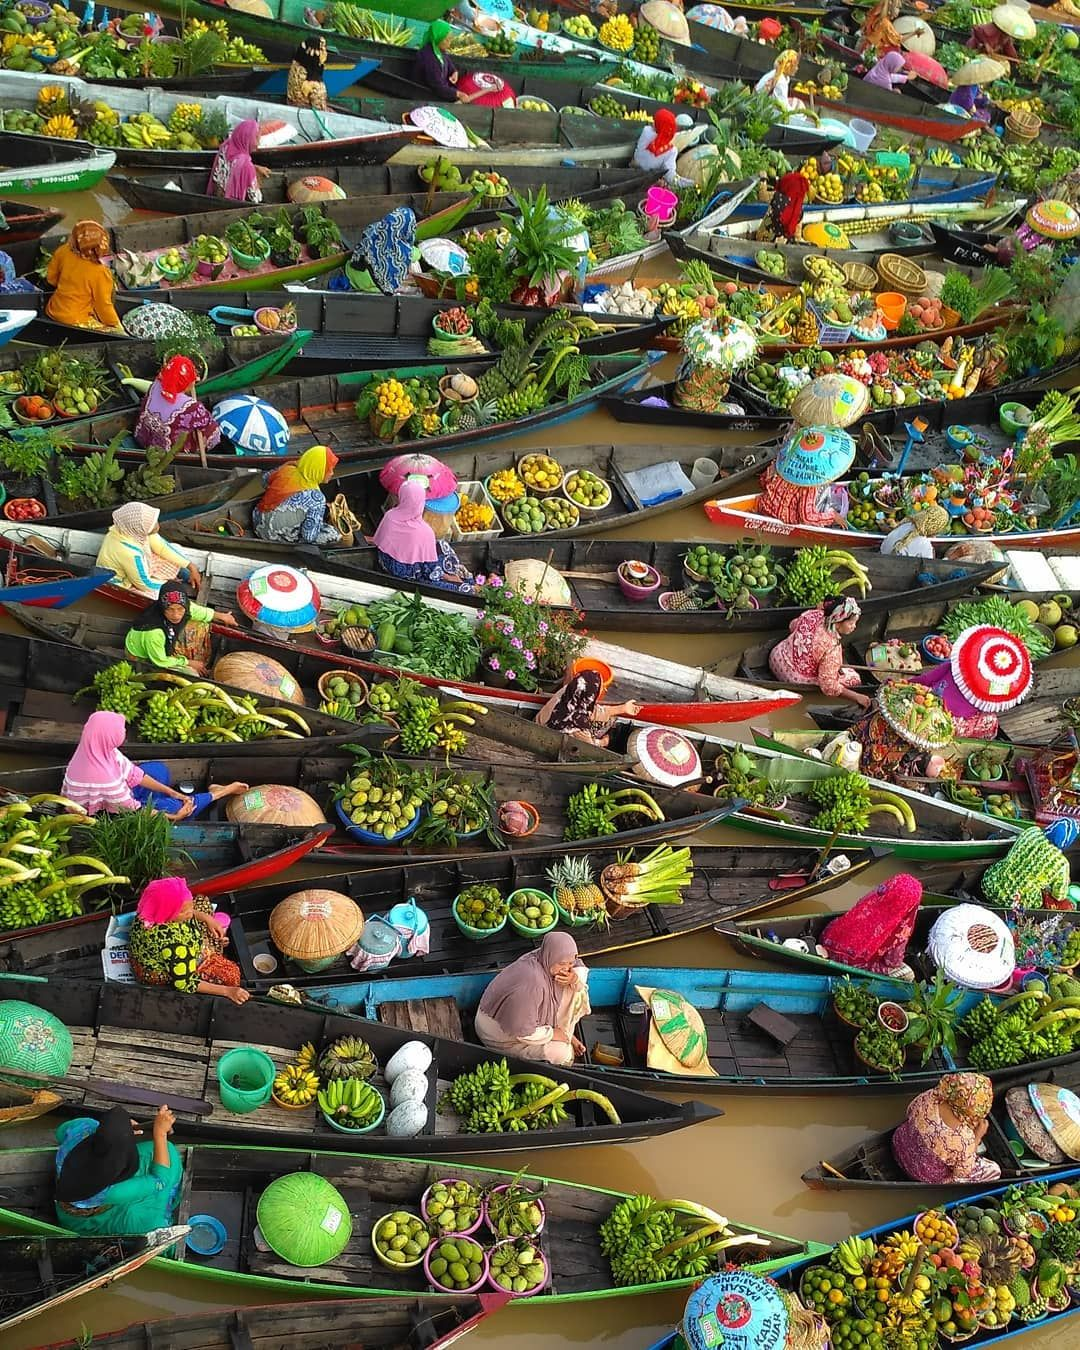 Art Wolfe Floating Market Spectacular Photos Of Colorful Floating Market In Indonesia By